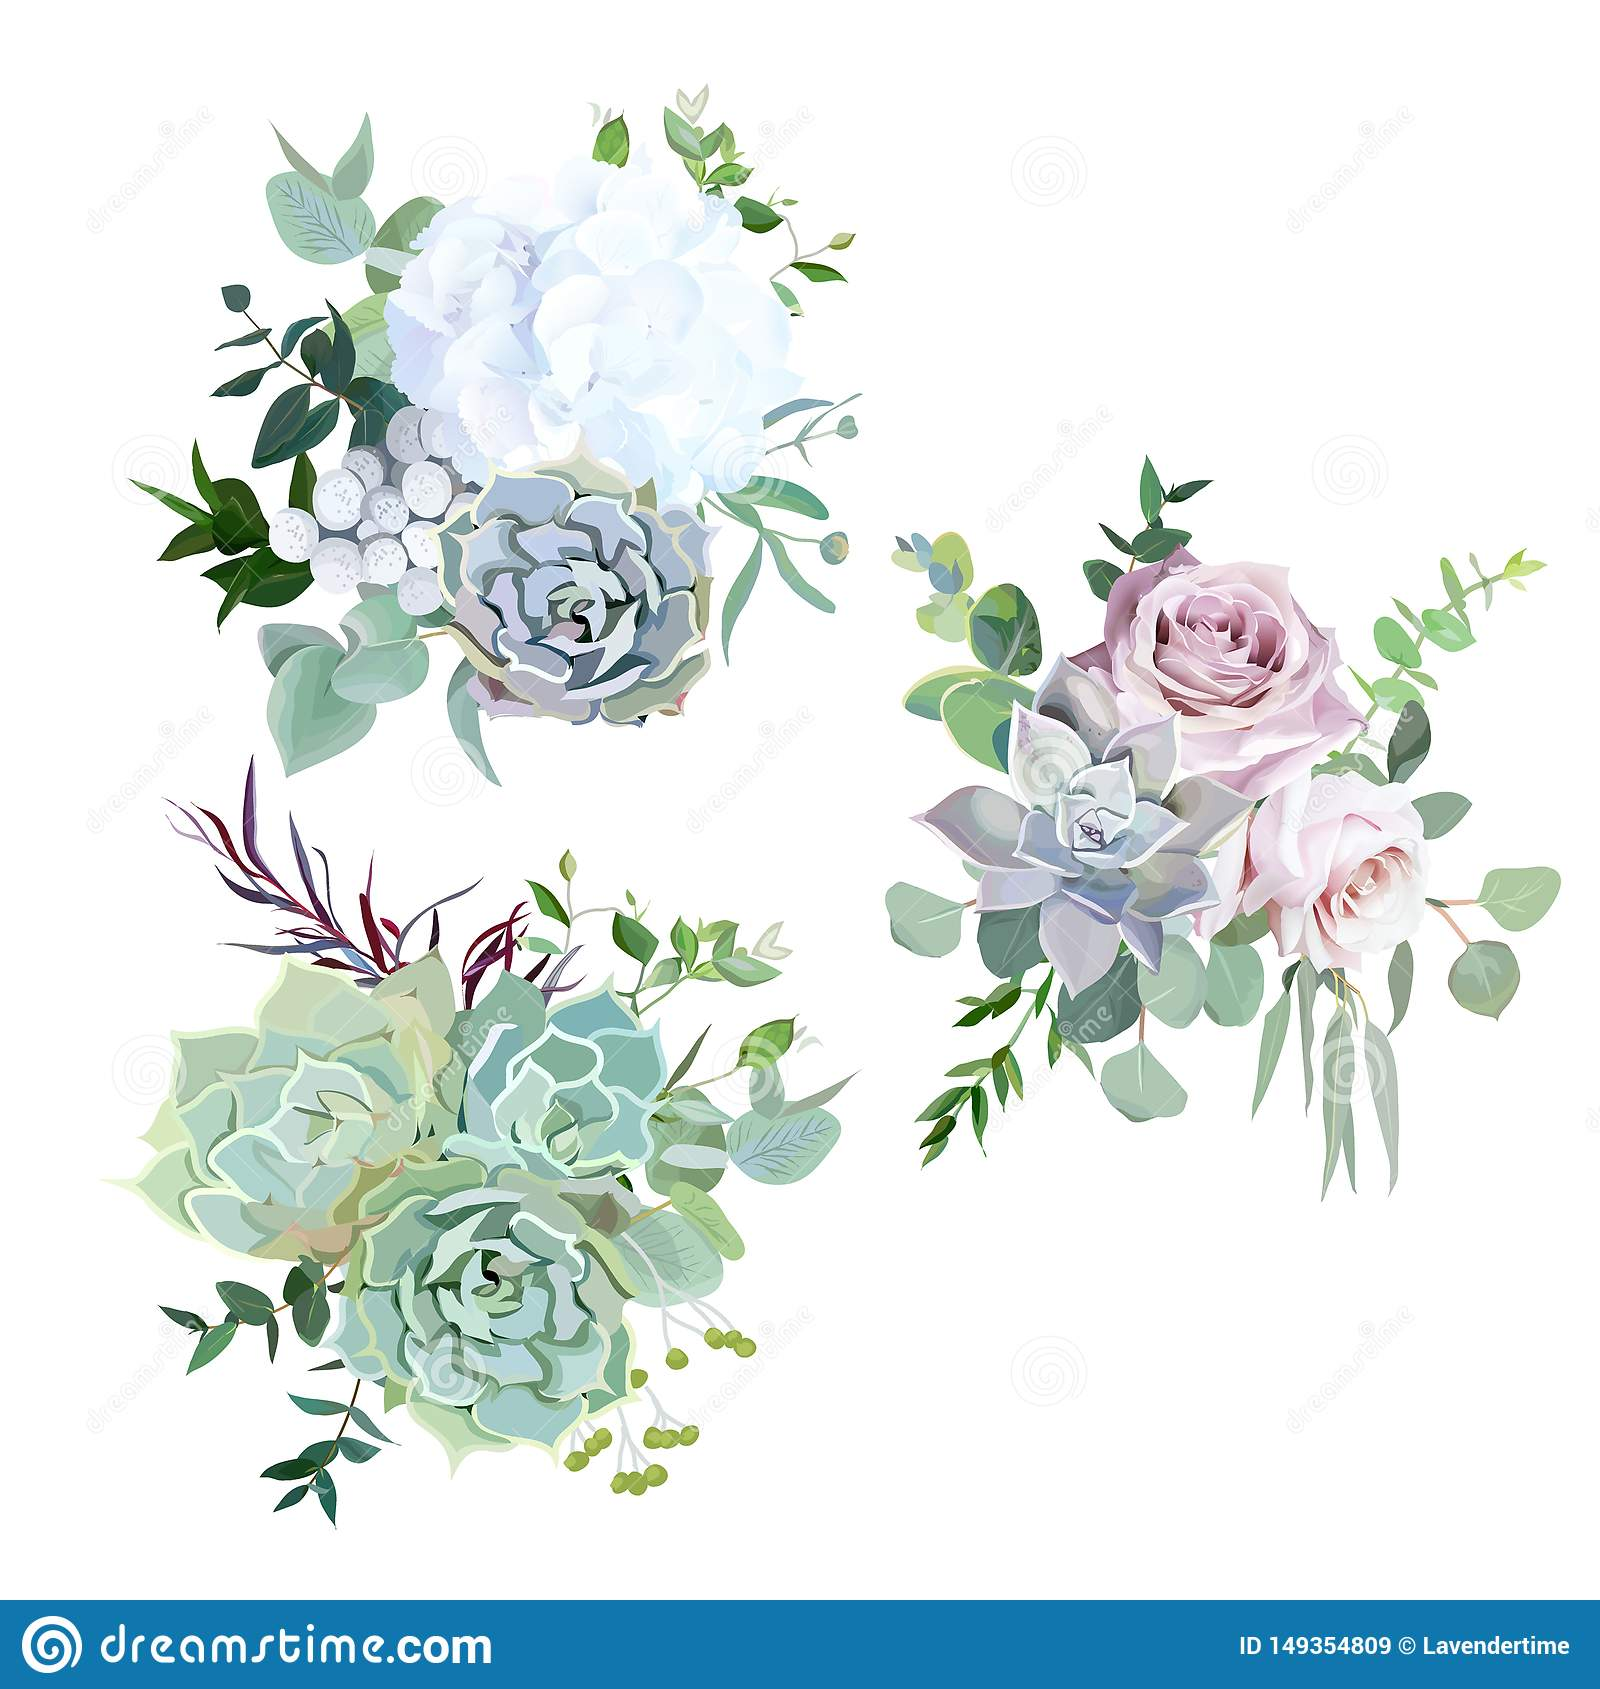 Echeveria Blue Grey Mint Succulents White Hydrangea Pale Pink And Lavender Rose Greenery Stock Vector Illustration Of Botanical Nature 149354809